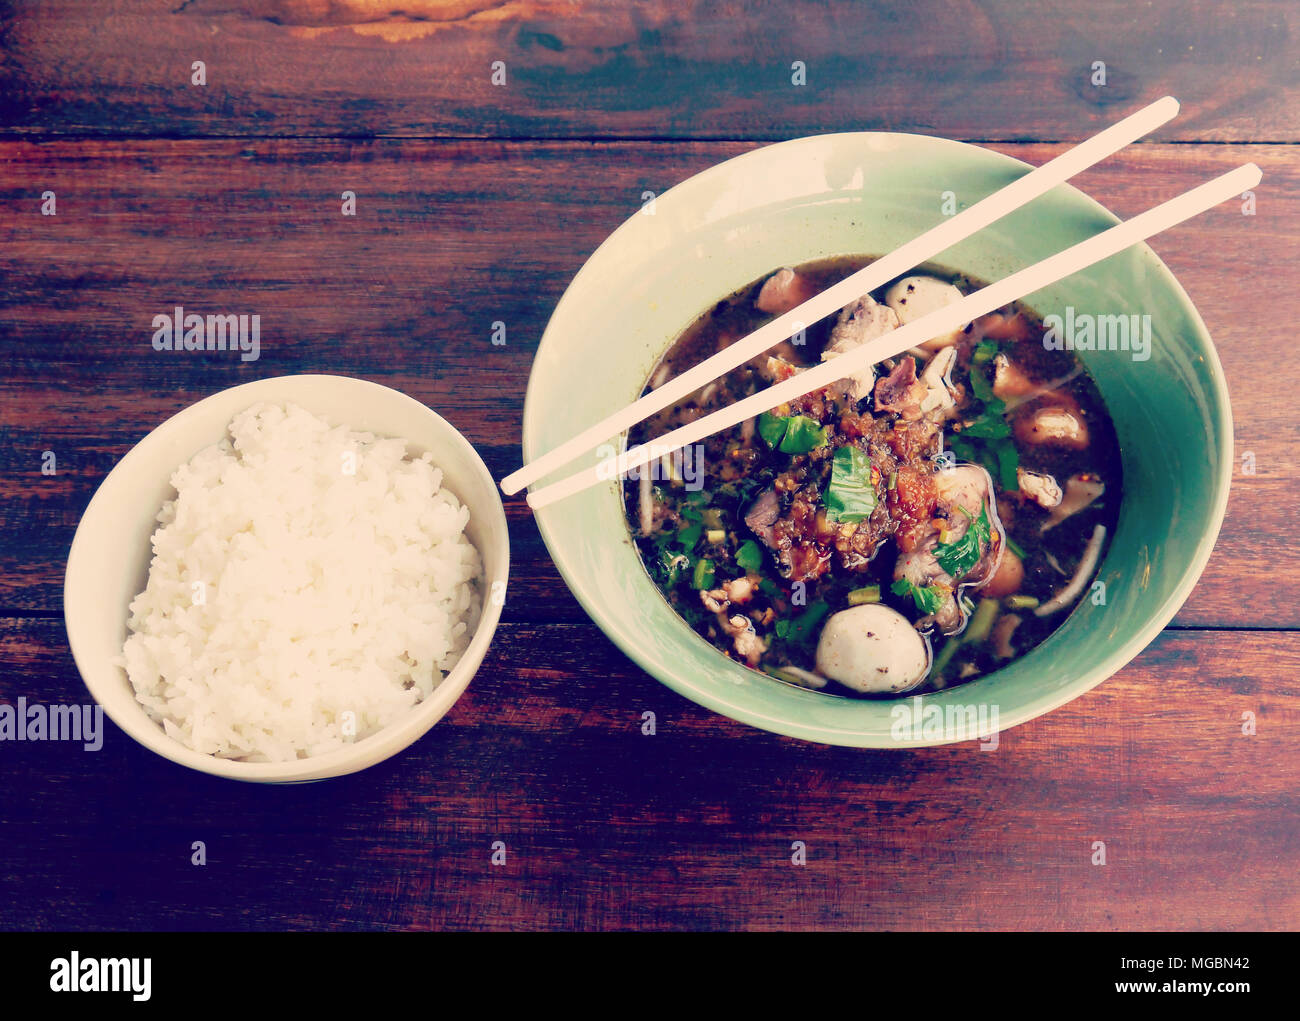 noodle and rice old vintage retro style - Stock Image